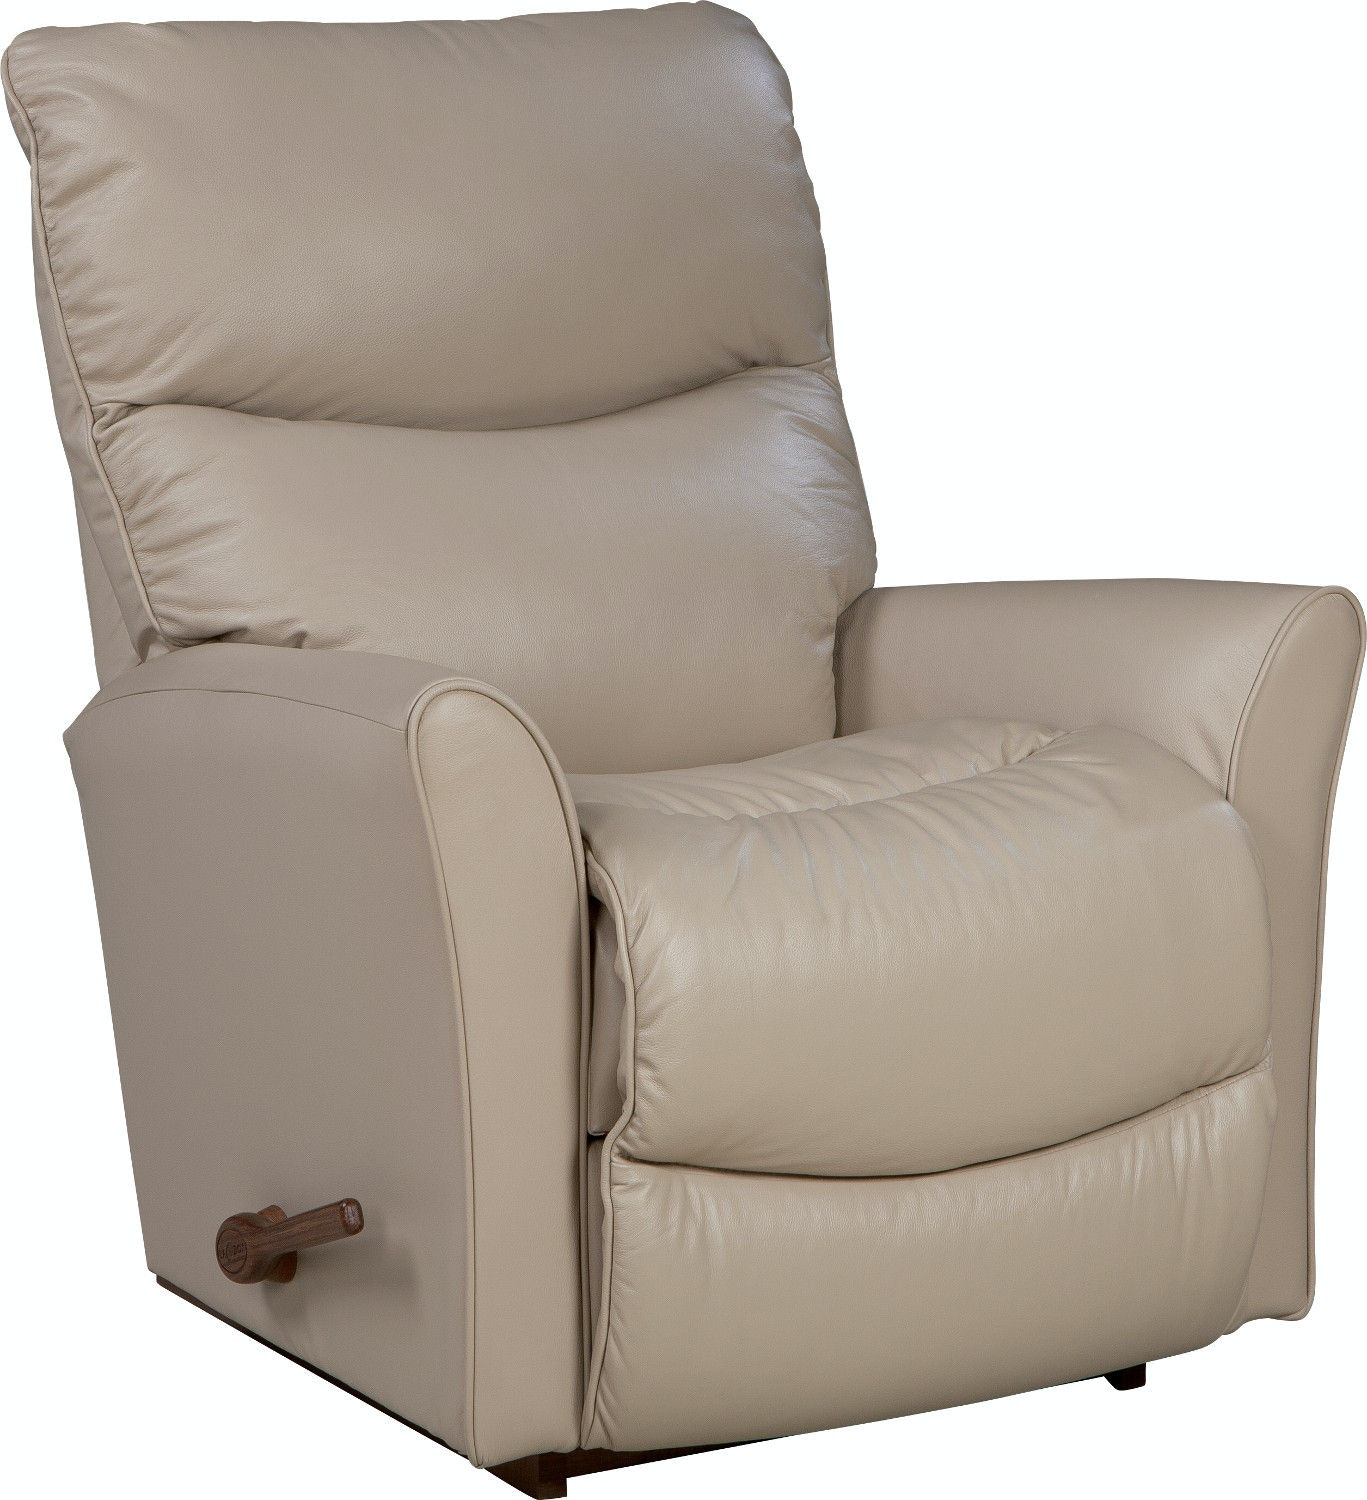 sofa retailers birmingham quality beds nz la z boy living room reclina rocker recliner 010765